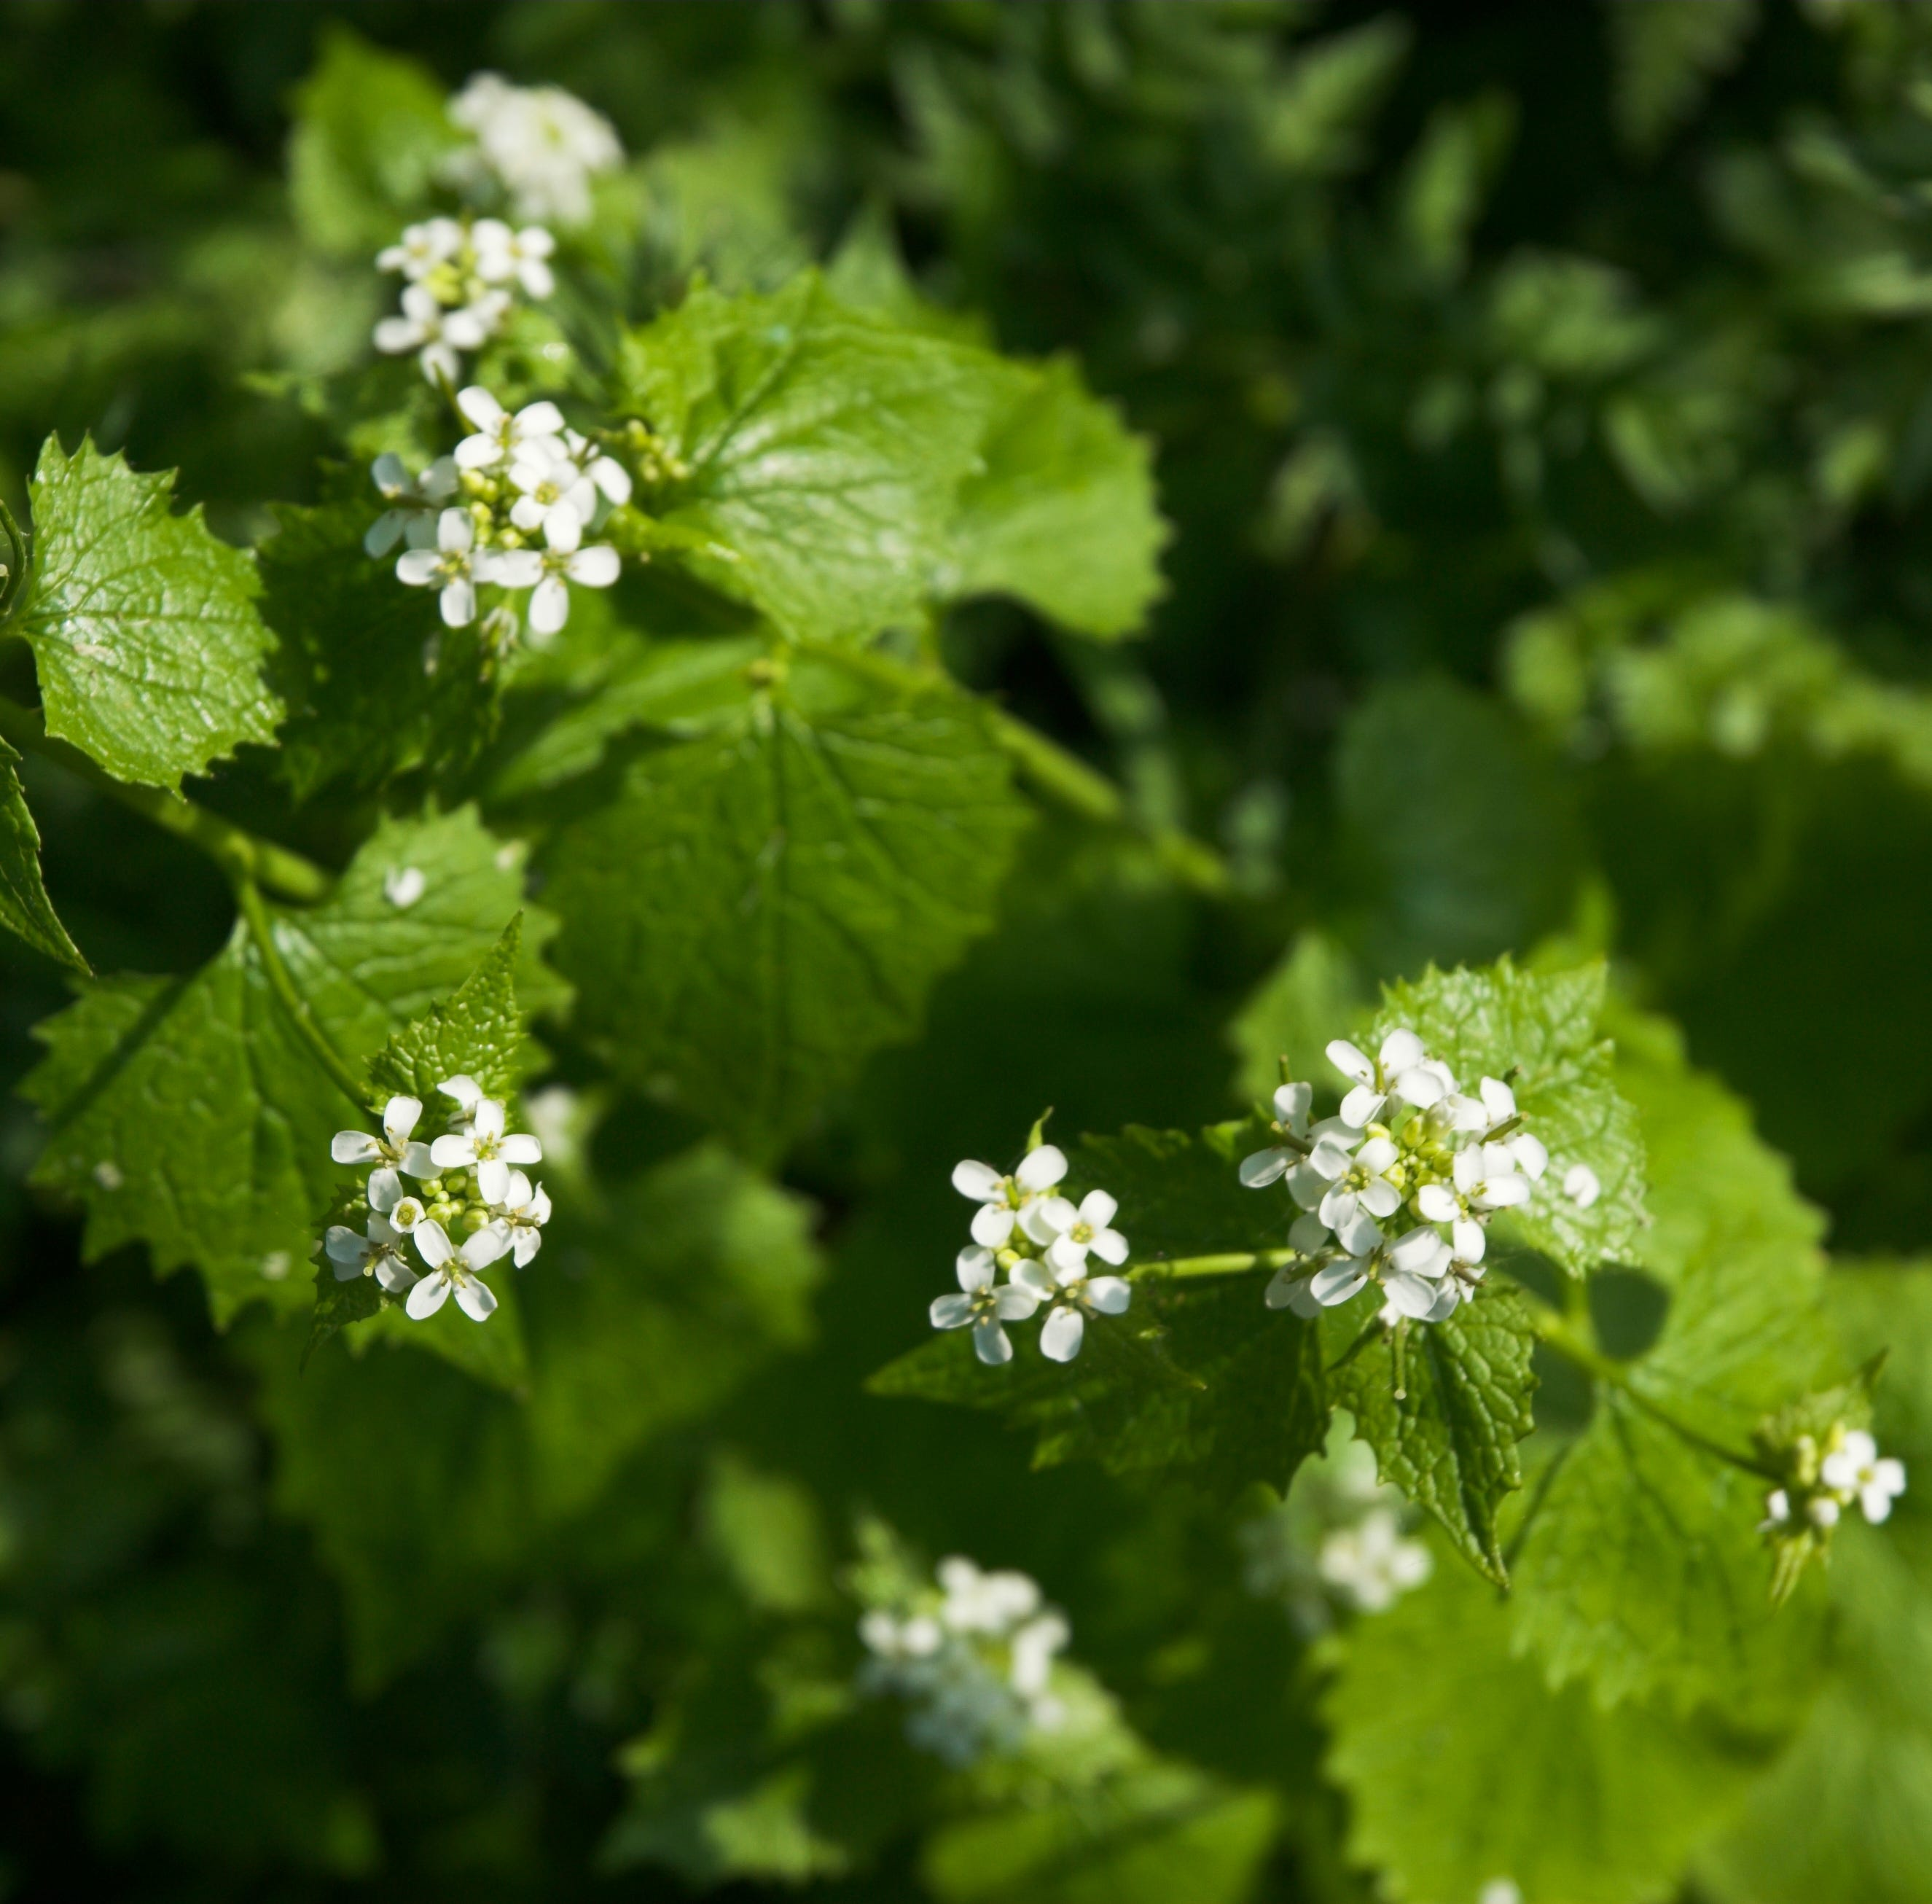 Get Up and Grow: Getting rid of garlic mustard